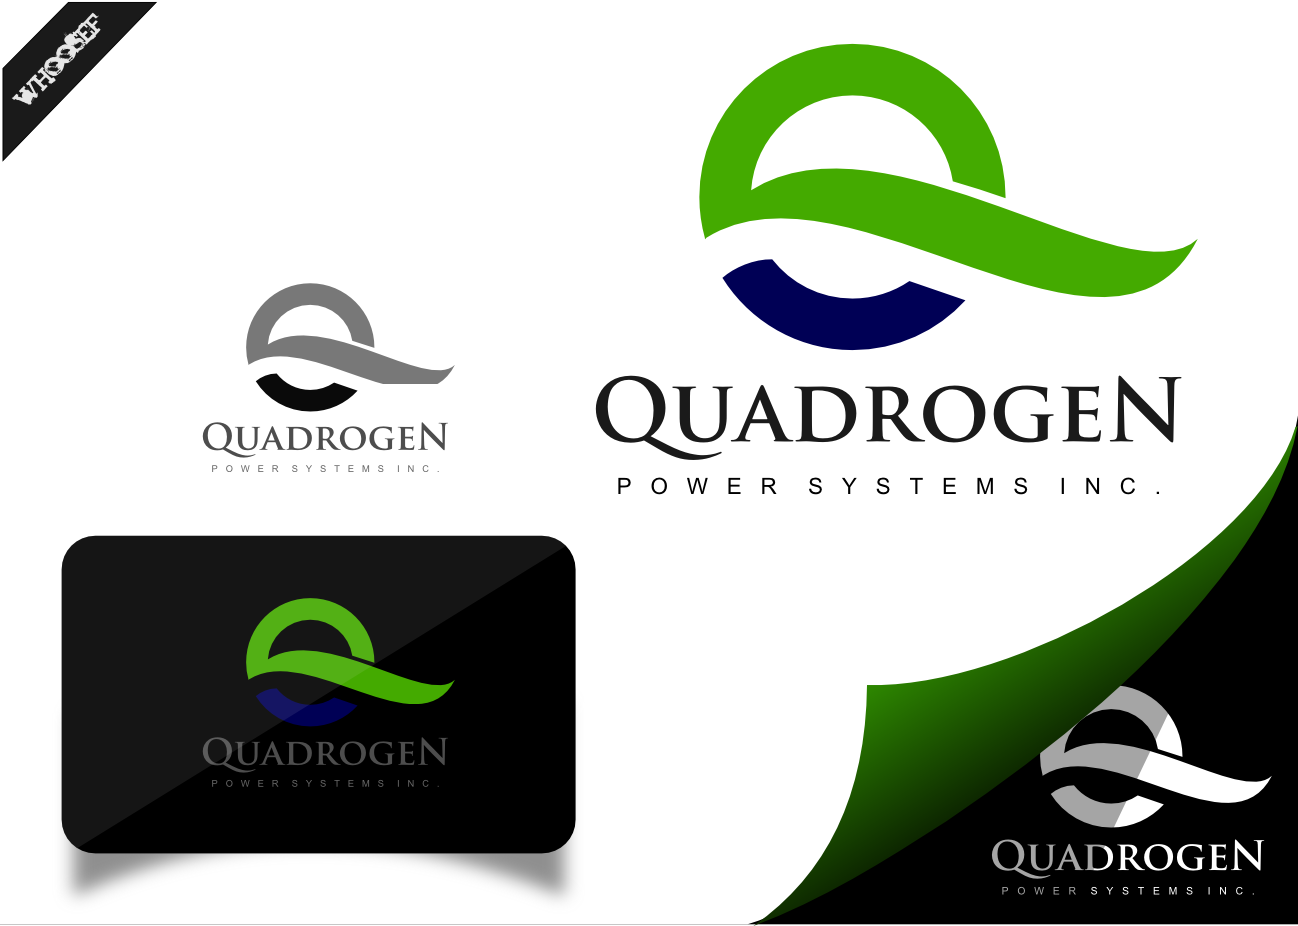 Logo Design by whoosef - Entry No. 62 in the Logo Design Contest New Logo Design for Quadrogen Power Systems, Inc.